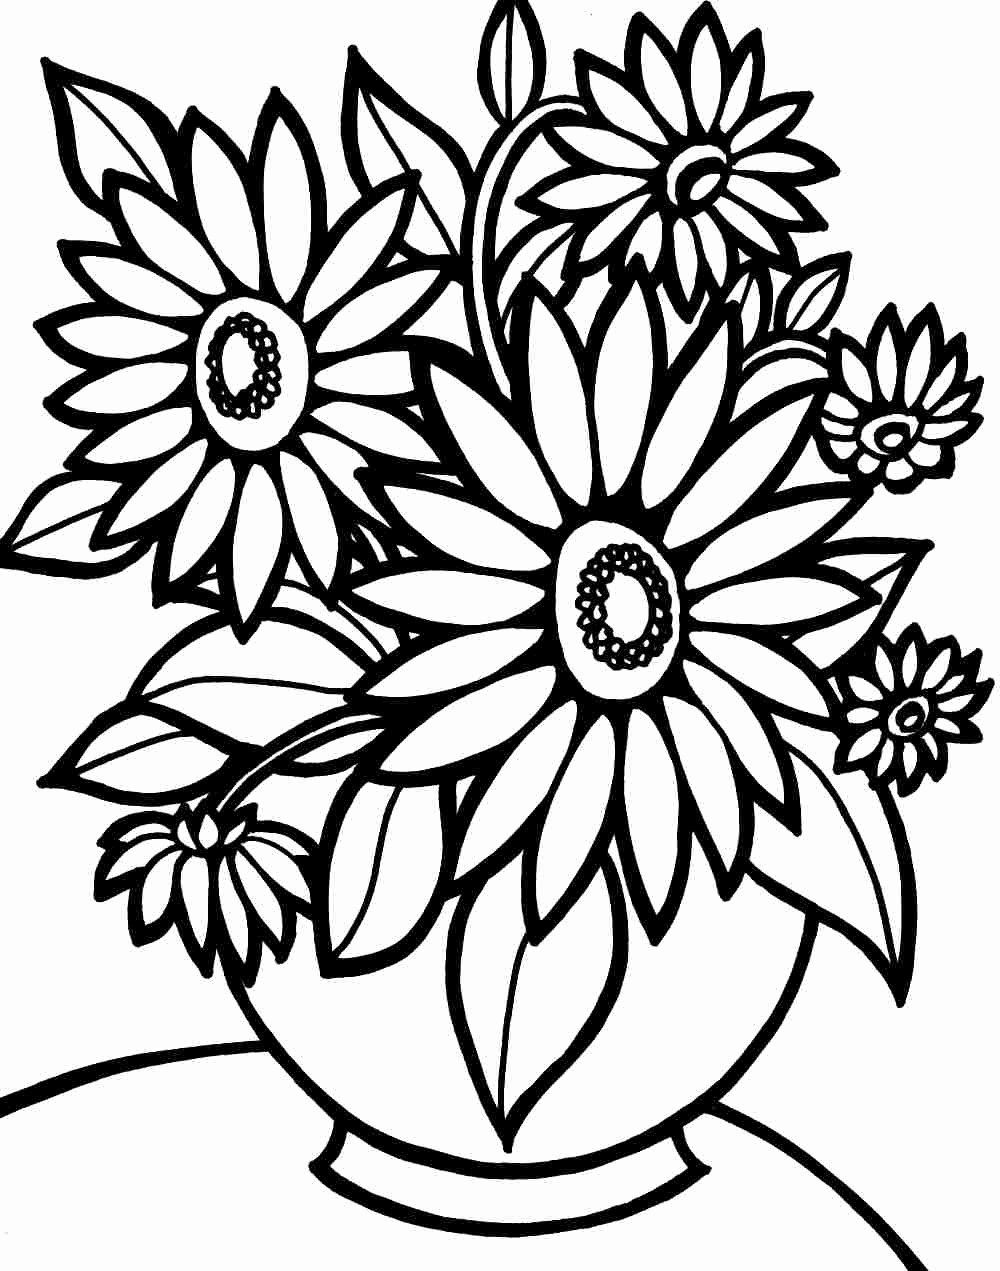 Coloring Book For Seniors Unique Coloring Pages For Seniors At Getdrawings In 2020 Printable Flower Coloring Pages Easy Coloring Pages Kids Printable Coloring Pages